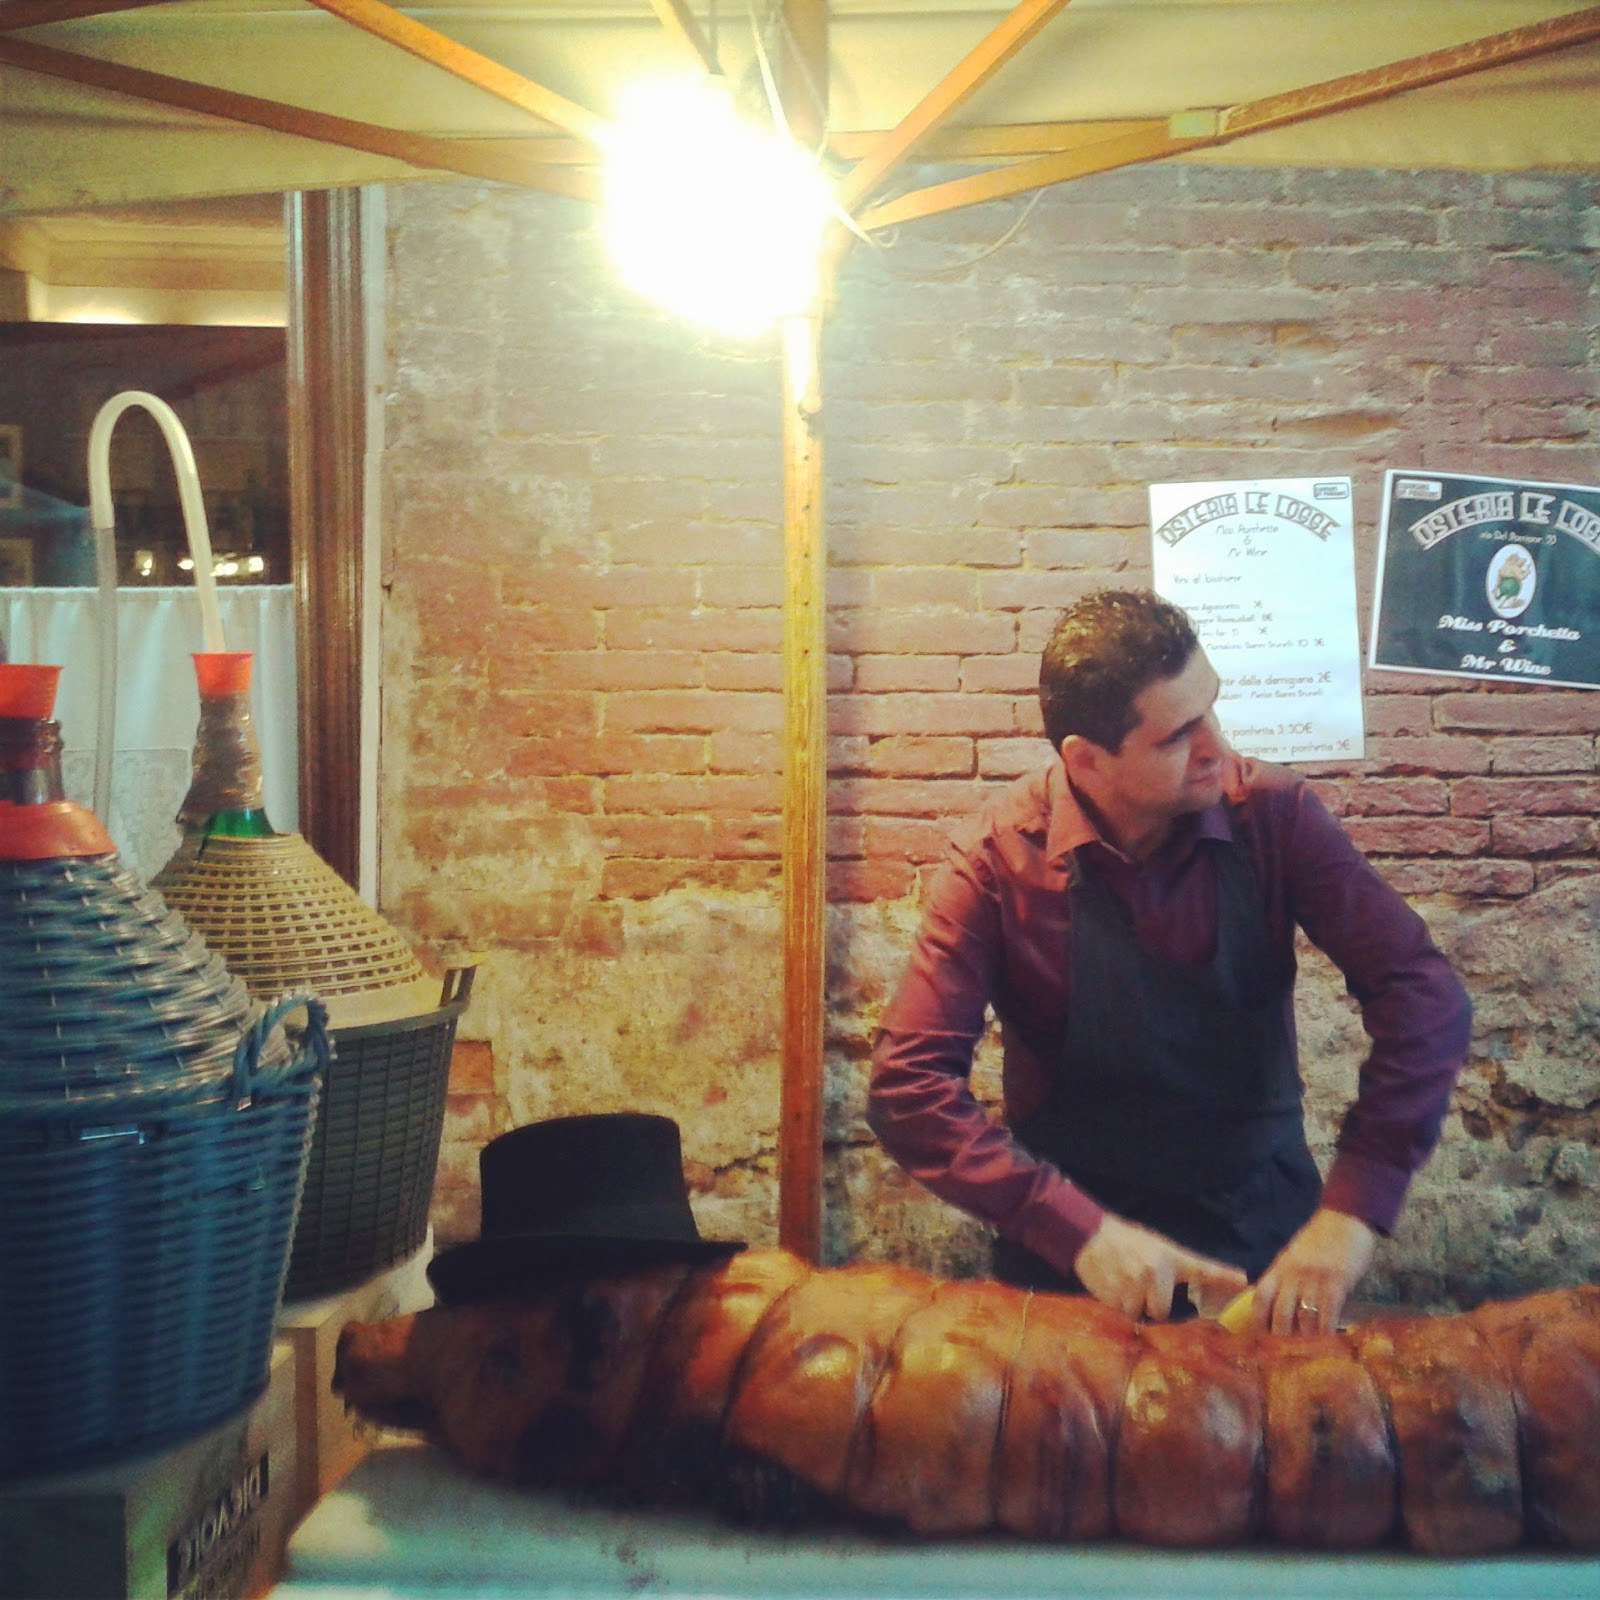 Mirco from restaurant le Logge cutting up Porchetta in front of Le Logge during a street festival